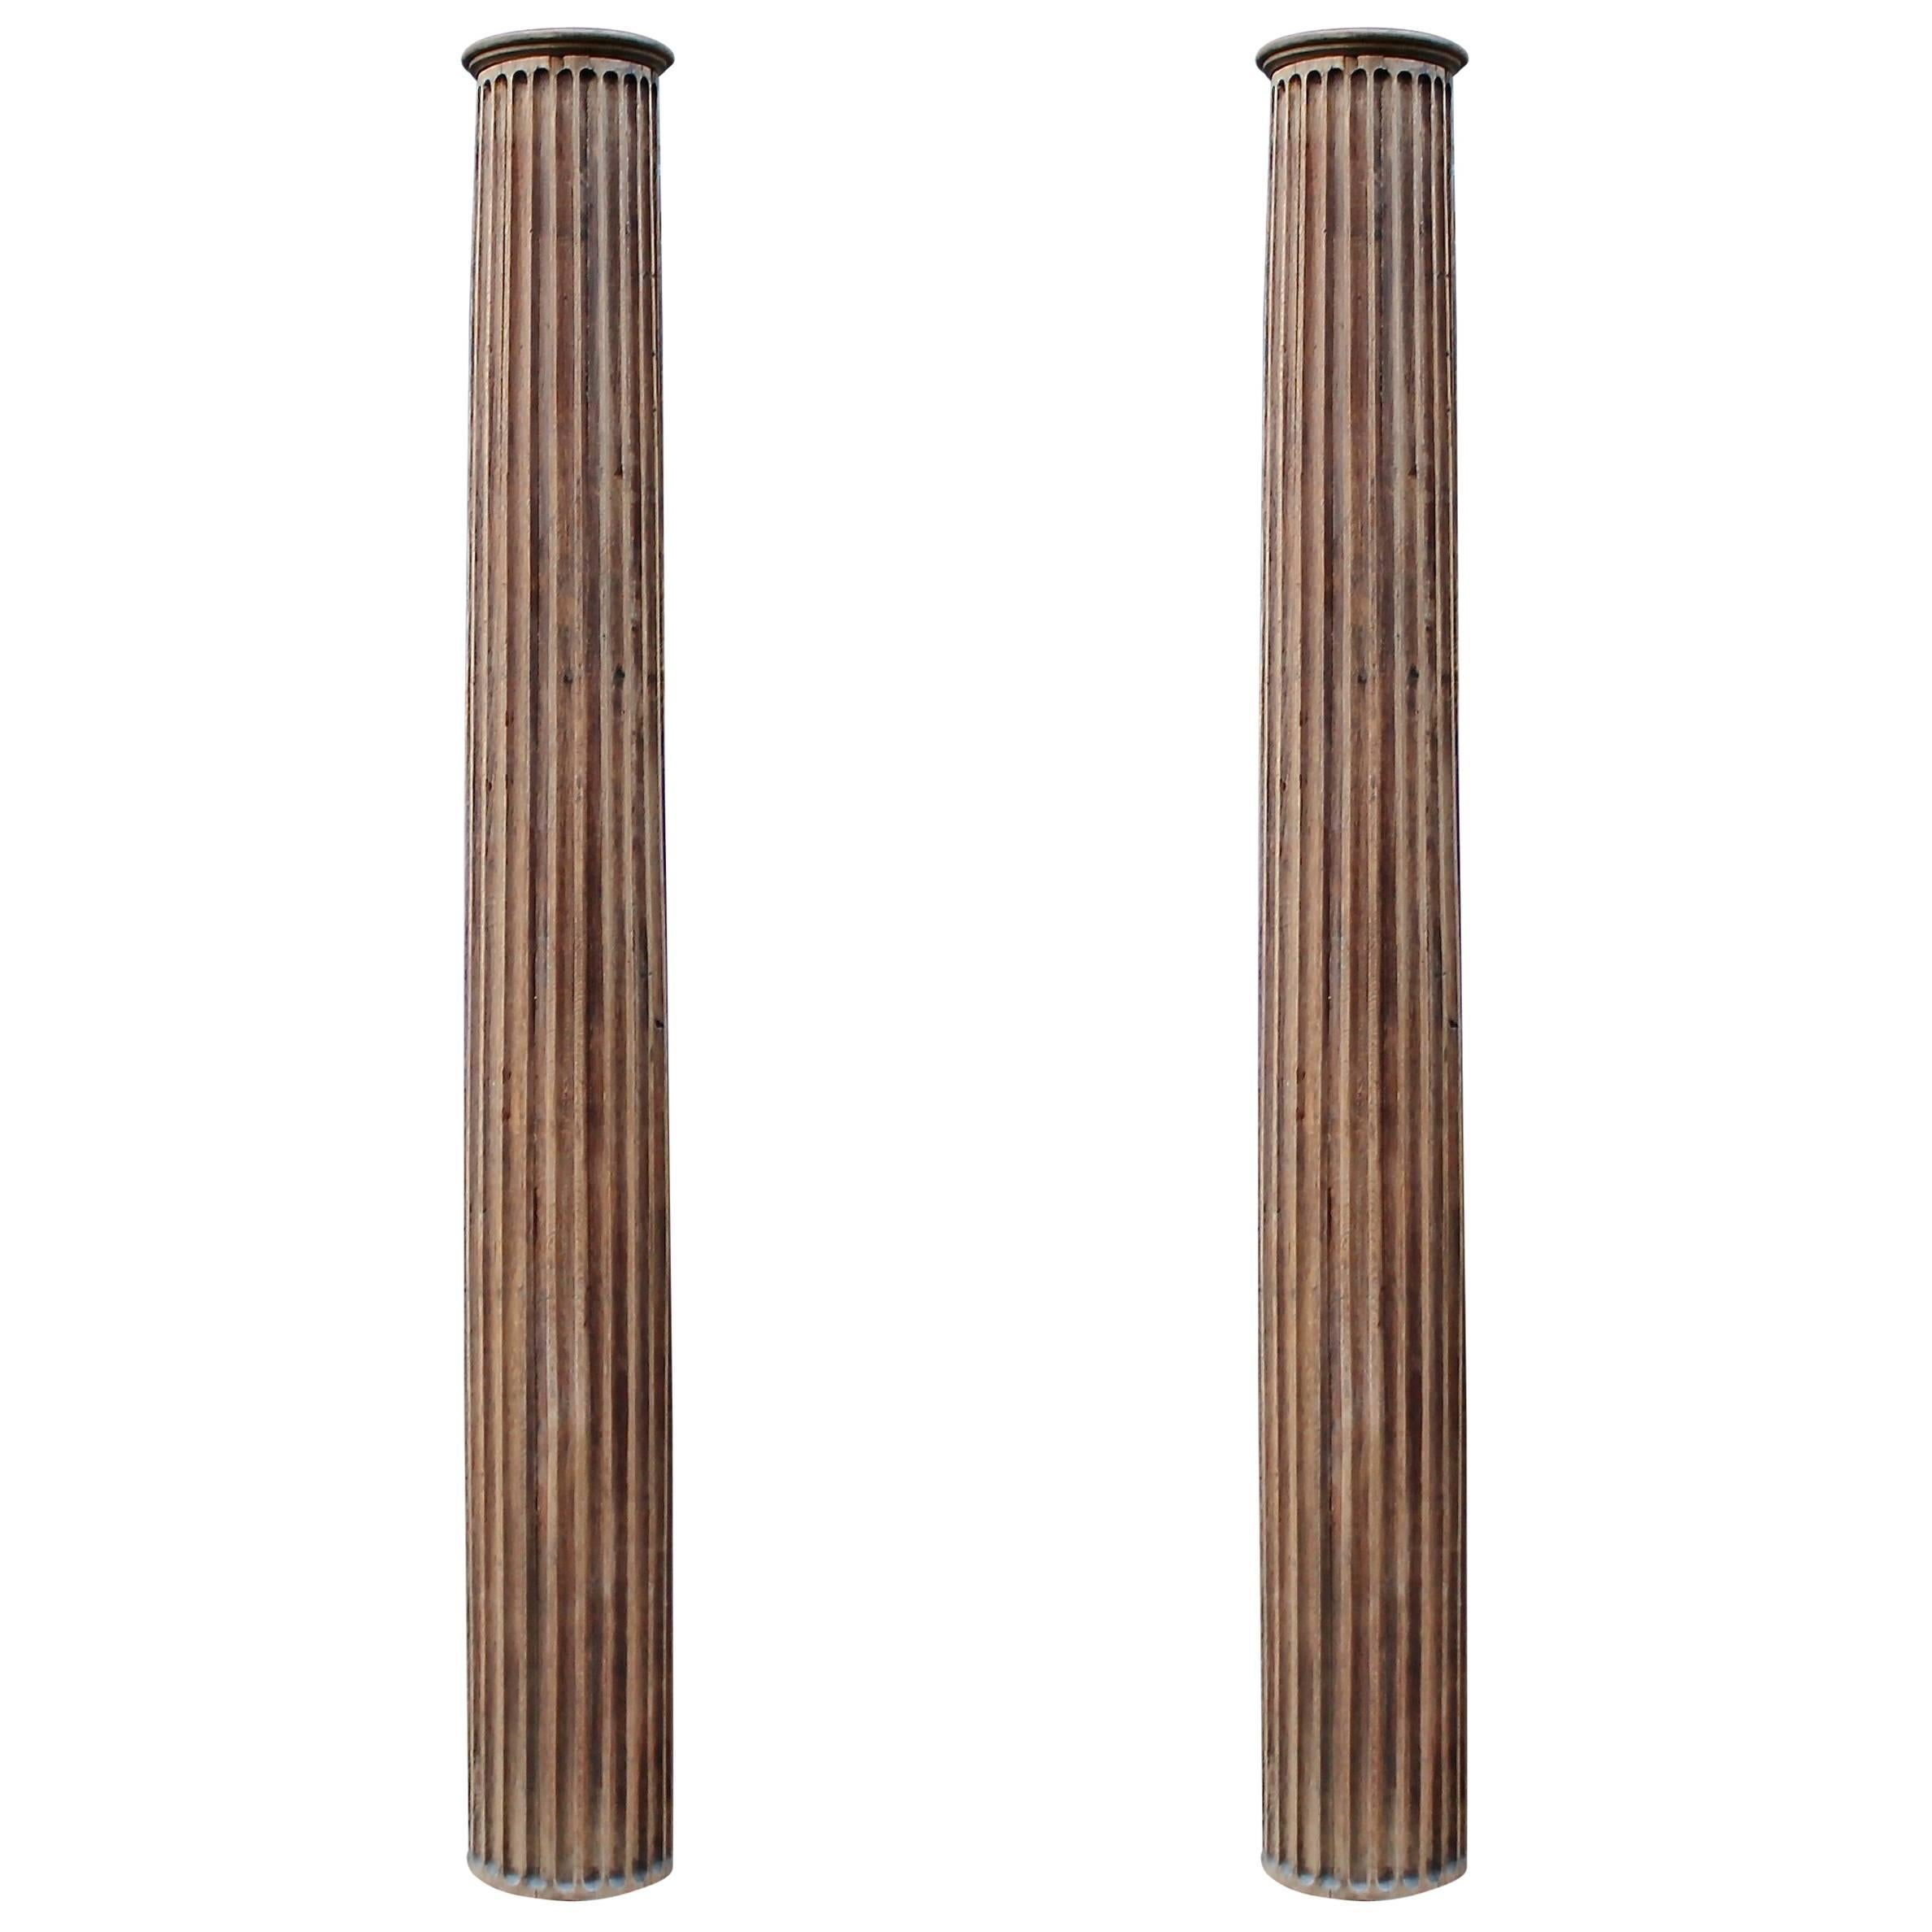 Best Pair Of 19Th C Decorative Wooden Columns At 1Stdibs This Month